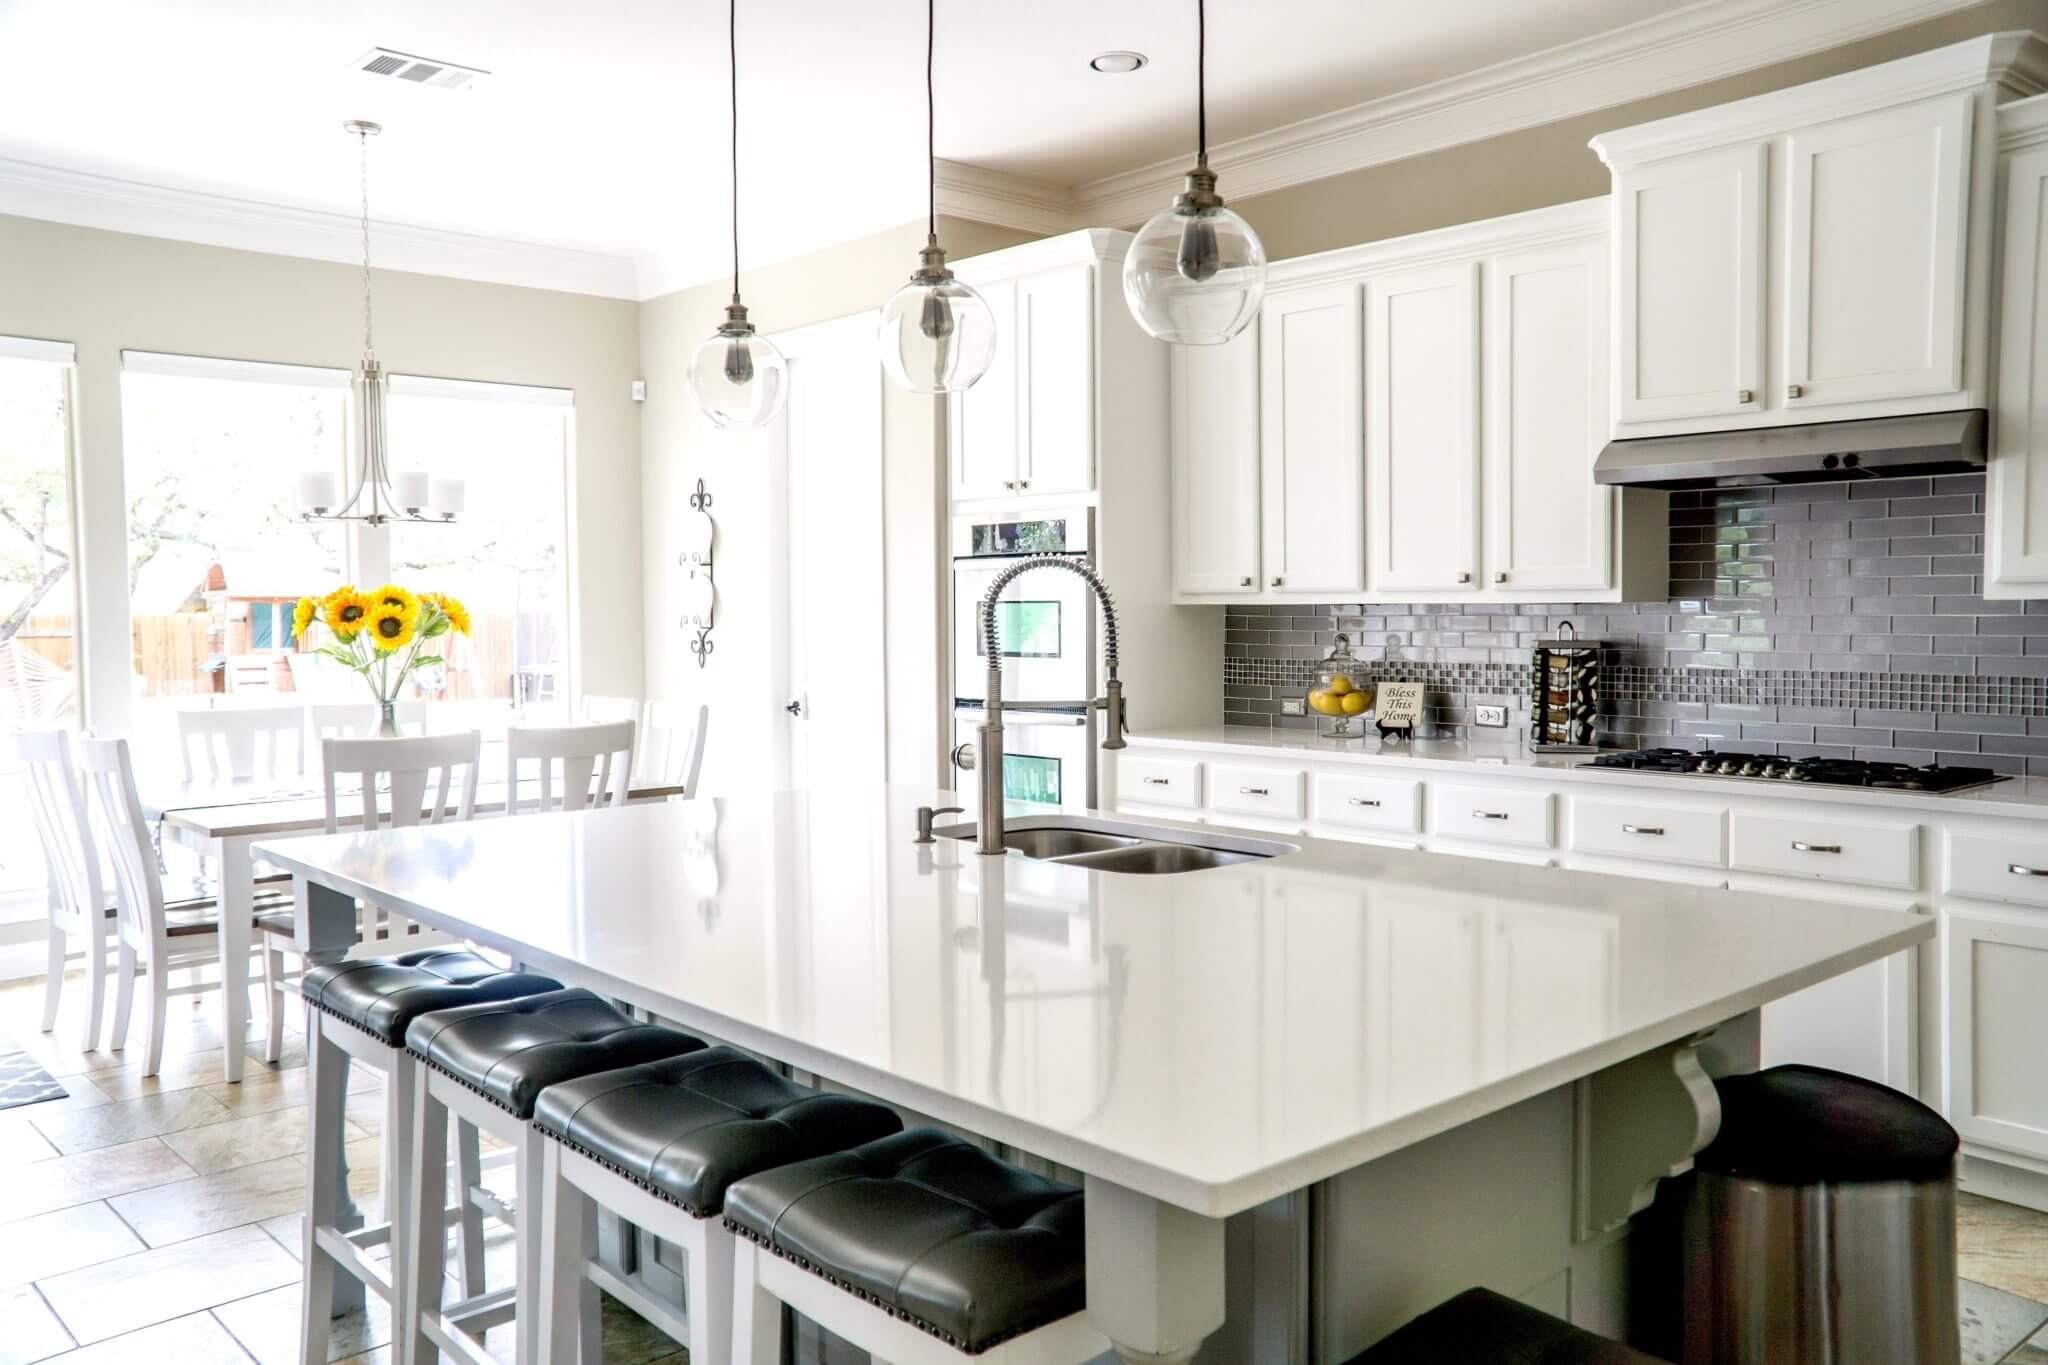 The Pros And Cons Of Inset Cabinets Vs Full Overlay Cabinets Nebs